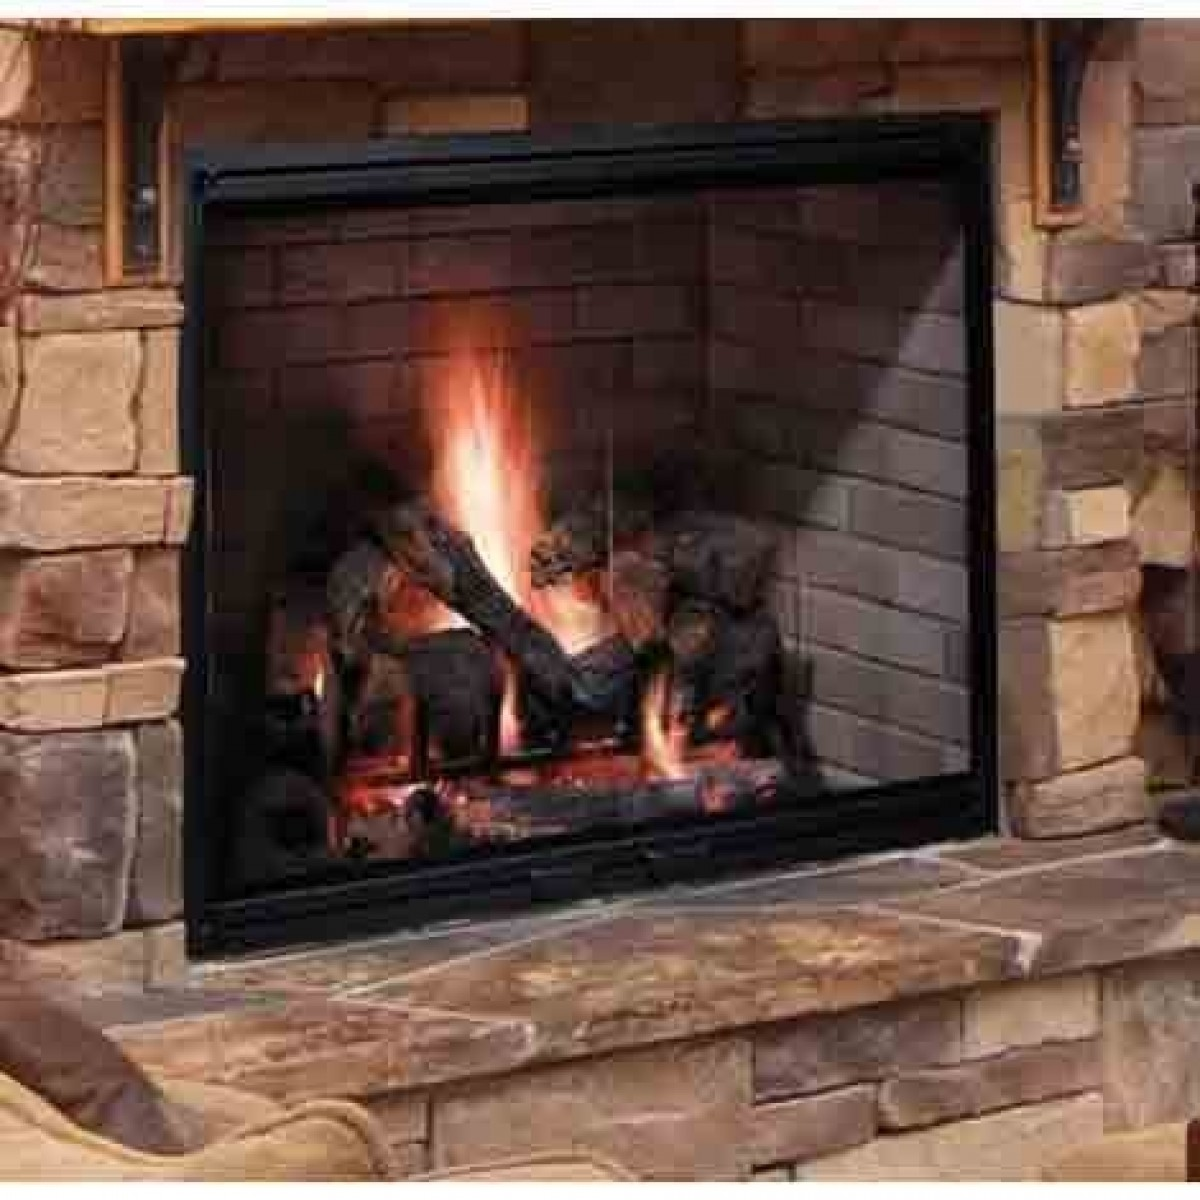 Majestic Sb80 Biltmore 42 Radiant Wood Burning Fireplaceat Ibuyfireplaces